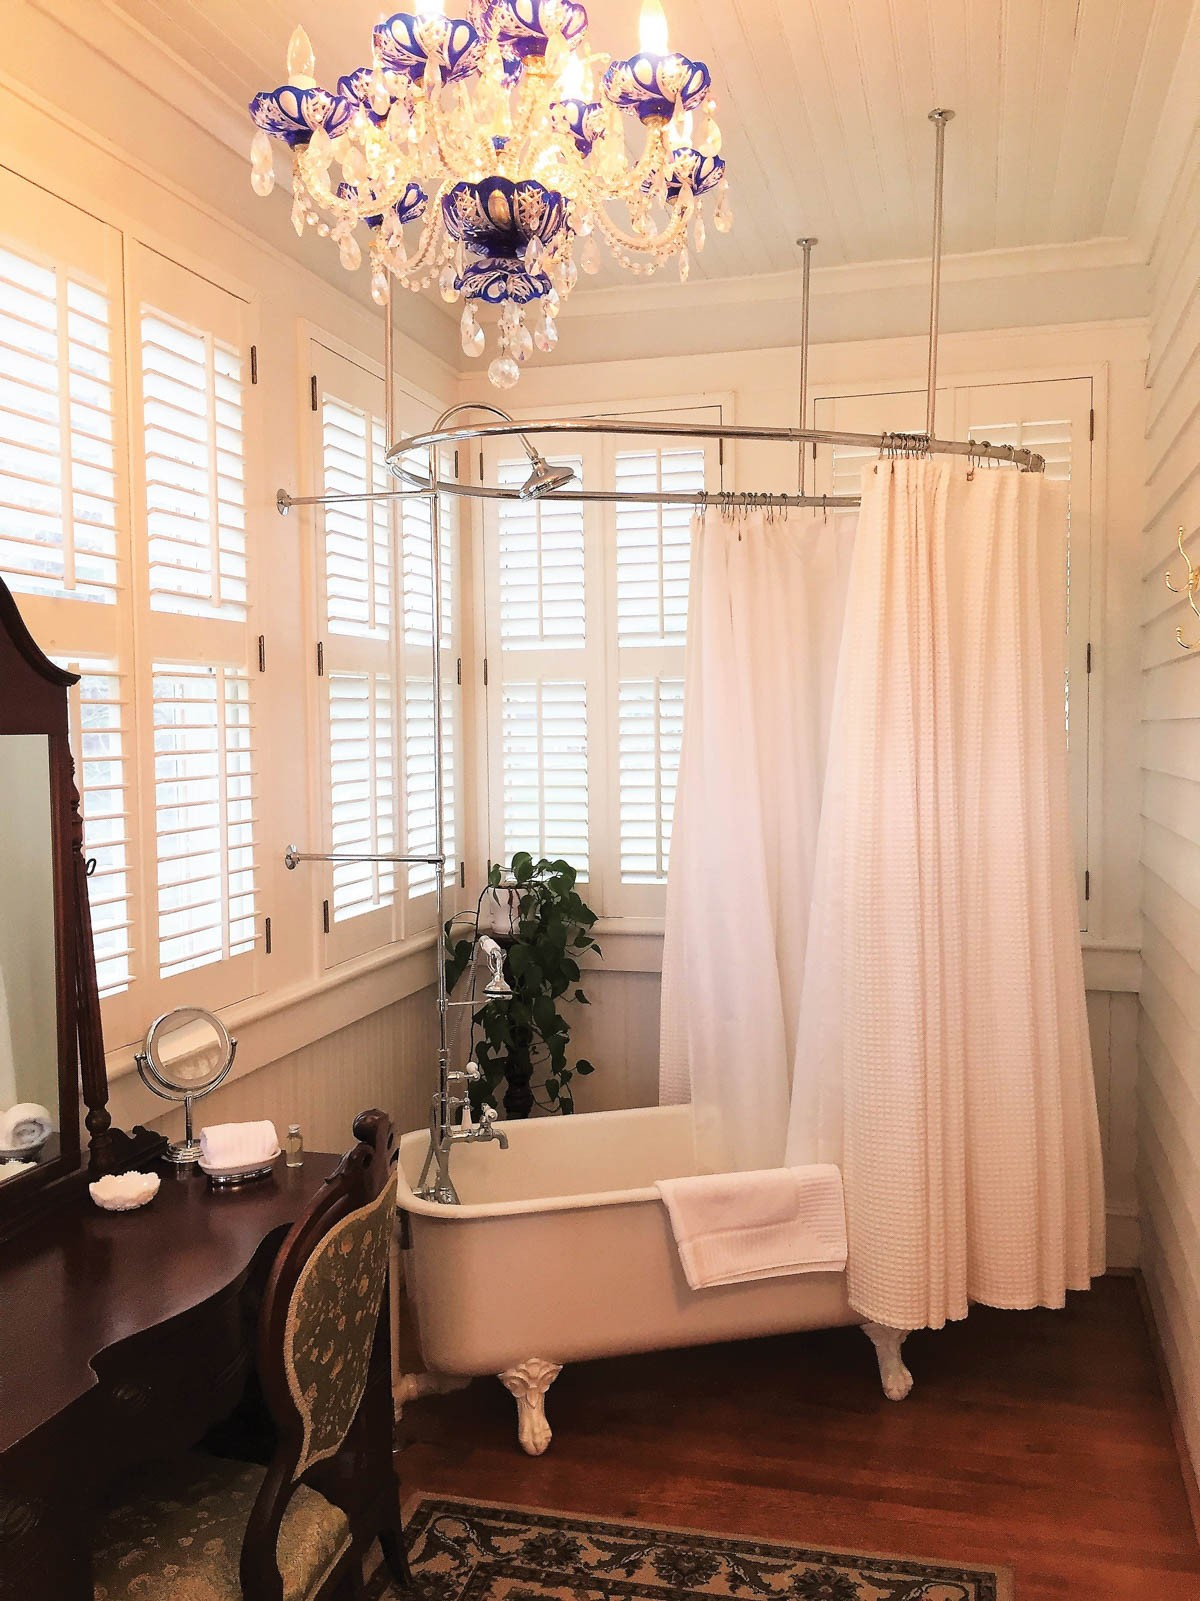 Bathroom of the Bess Ray Howell room